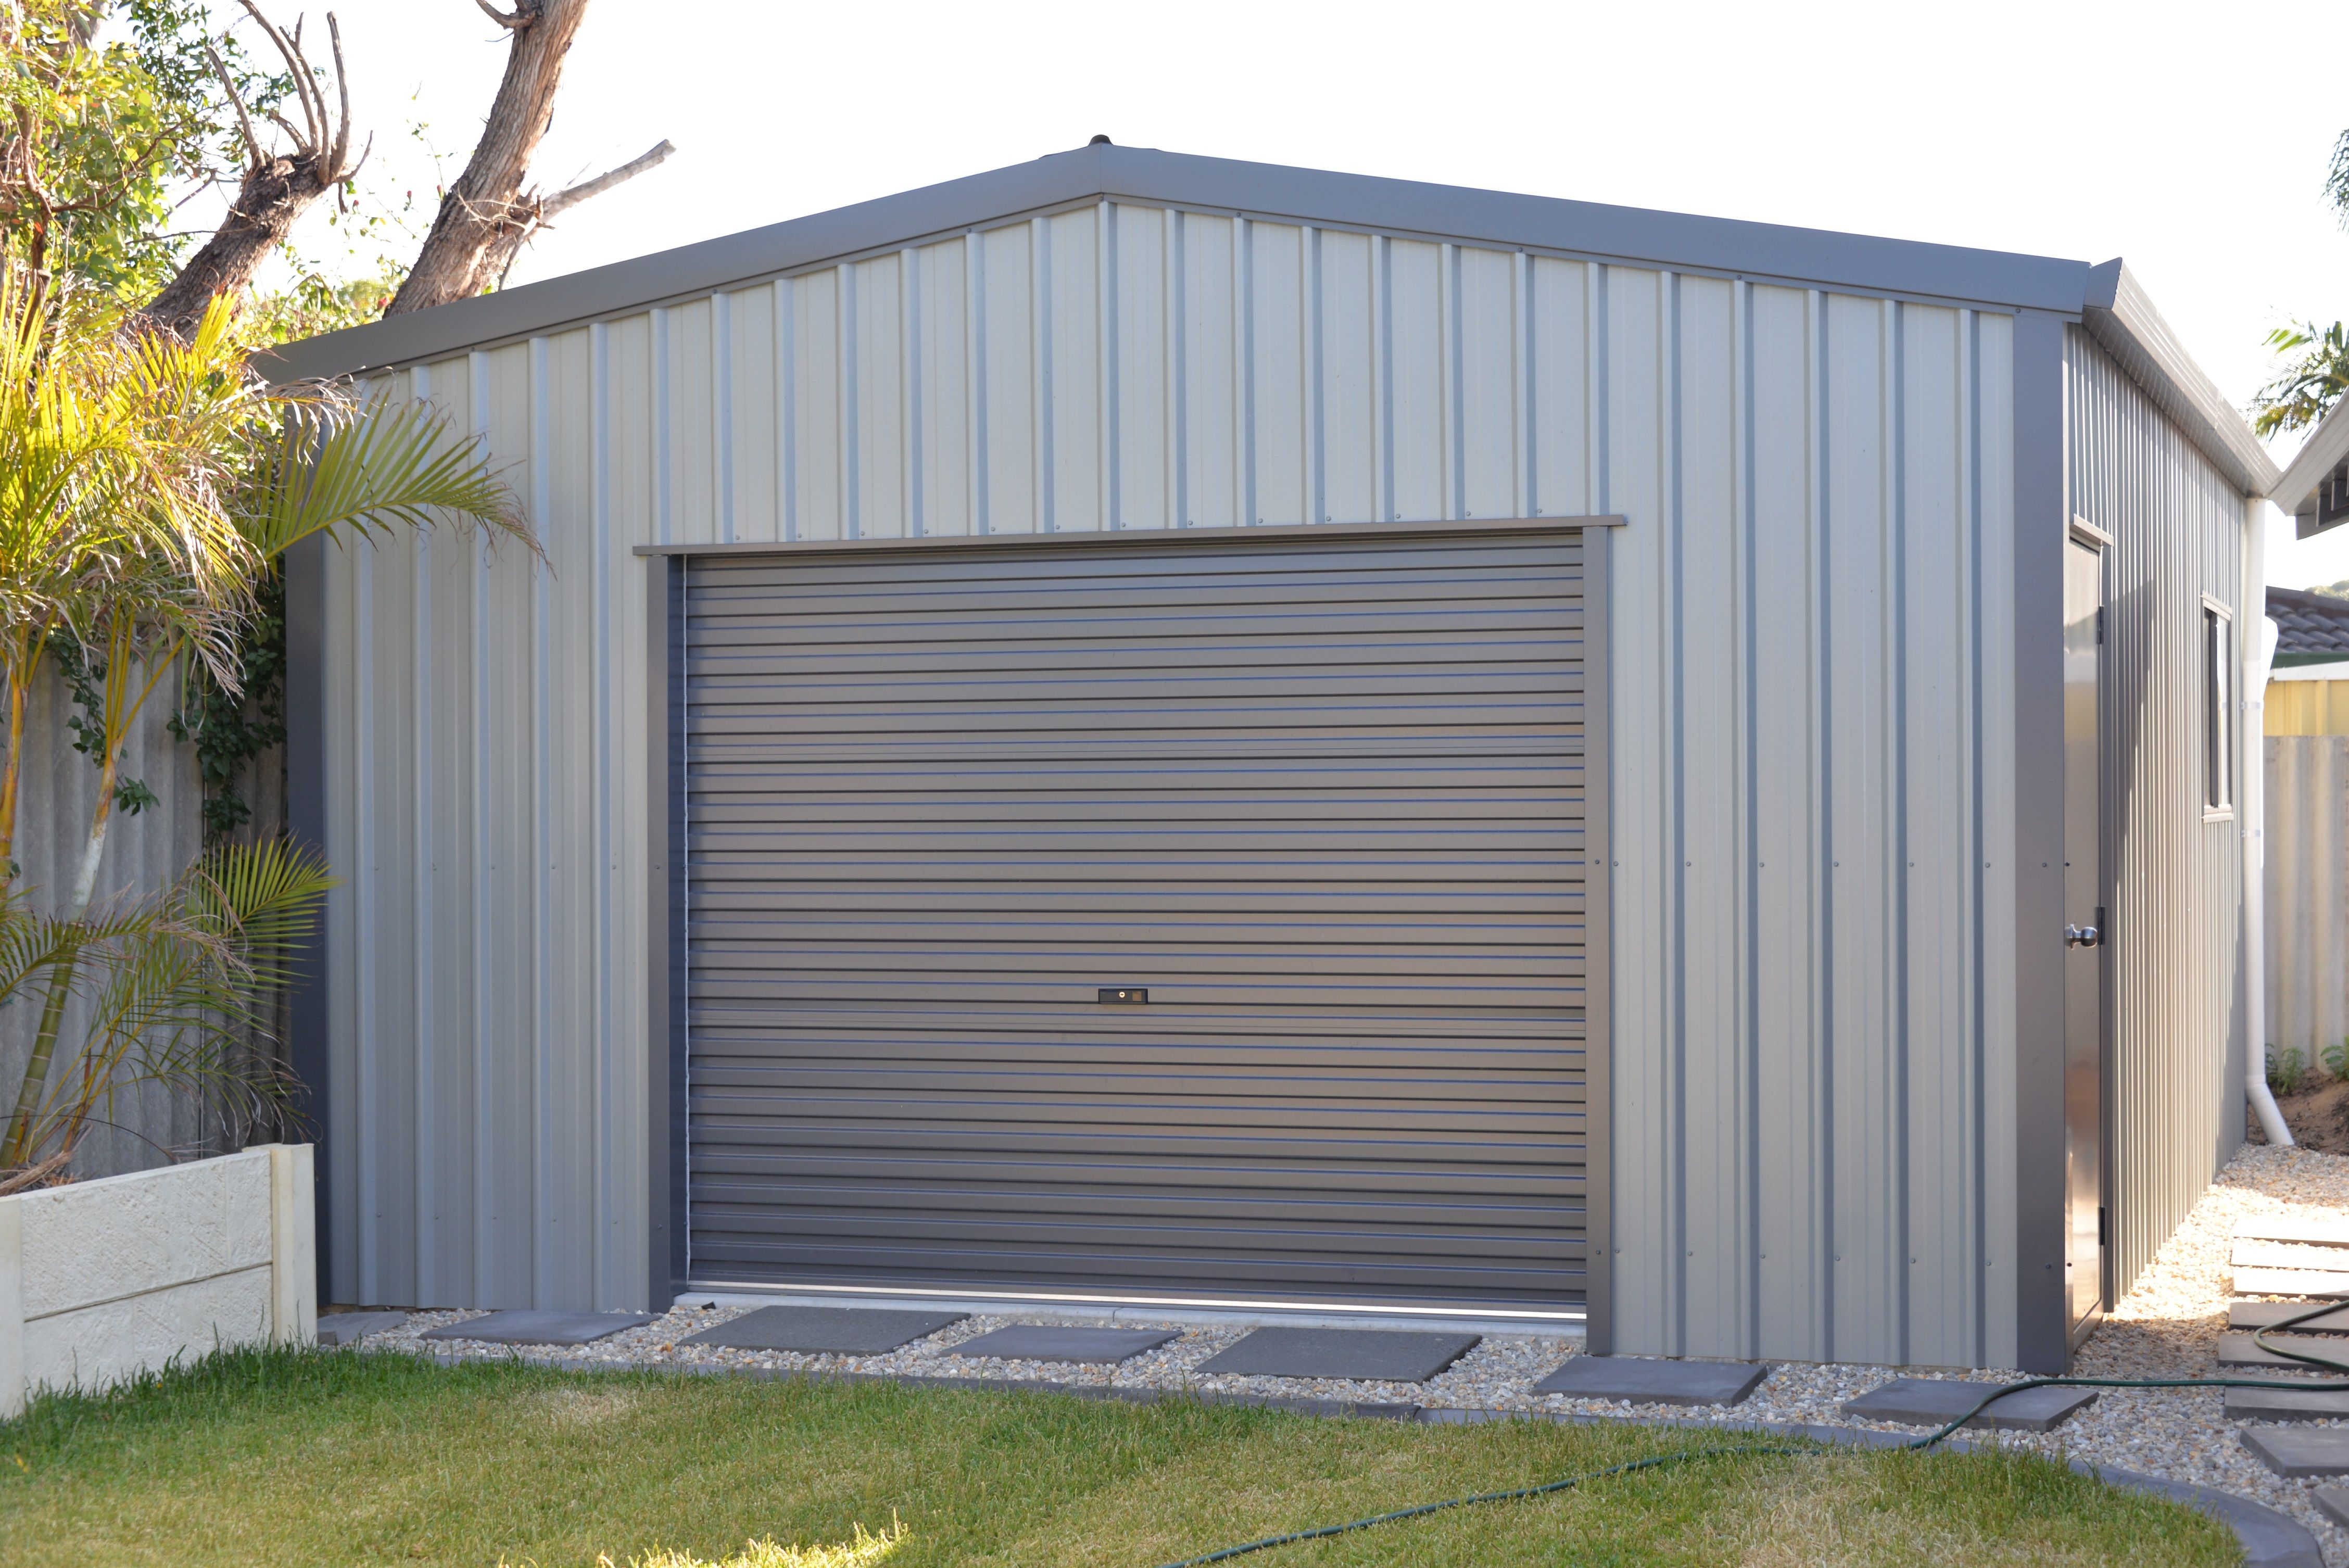 barns products garage ridge garages pine sheds